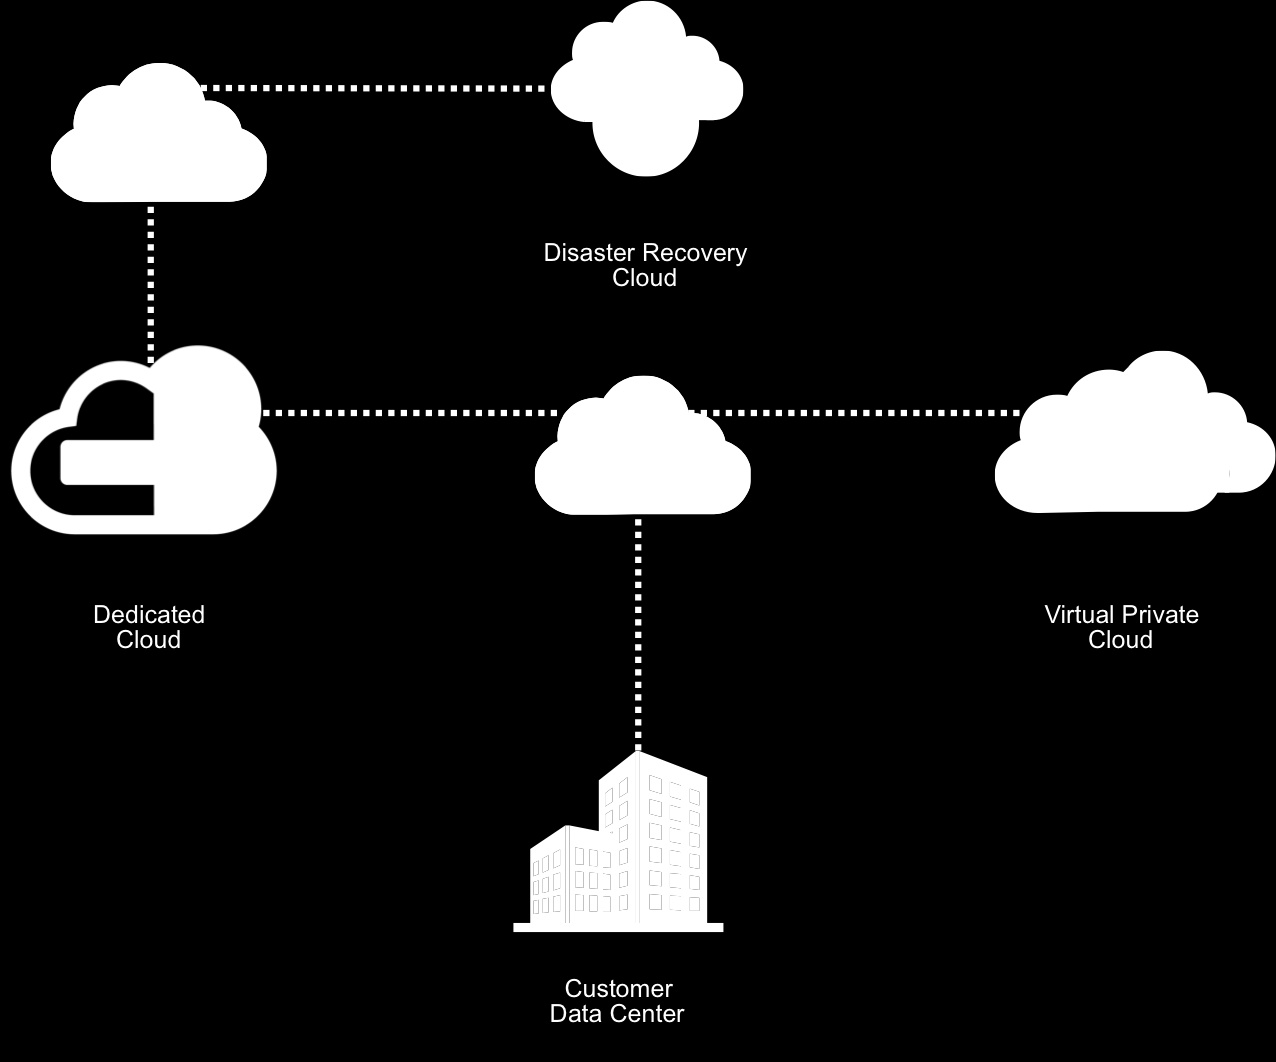 Figure 2. Building out a hybrid cloud infrastructure is akin to building another data center one that is virtual, but another data center nonetheless.